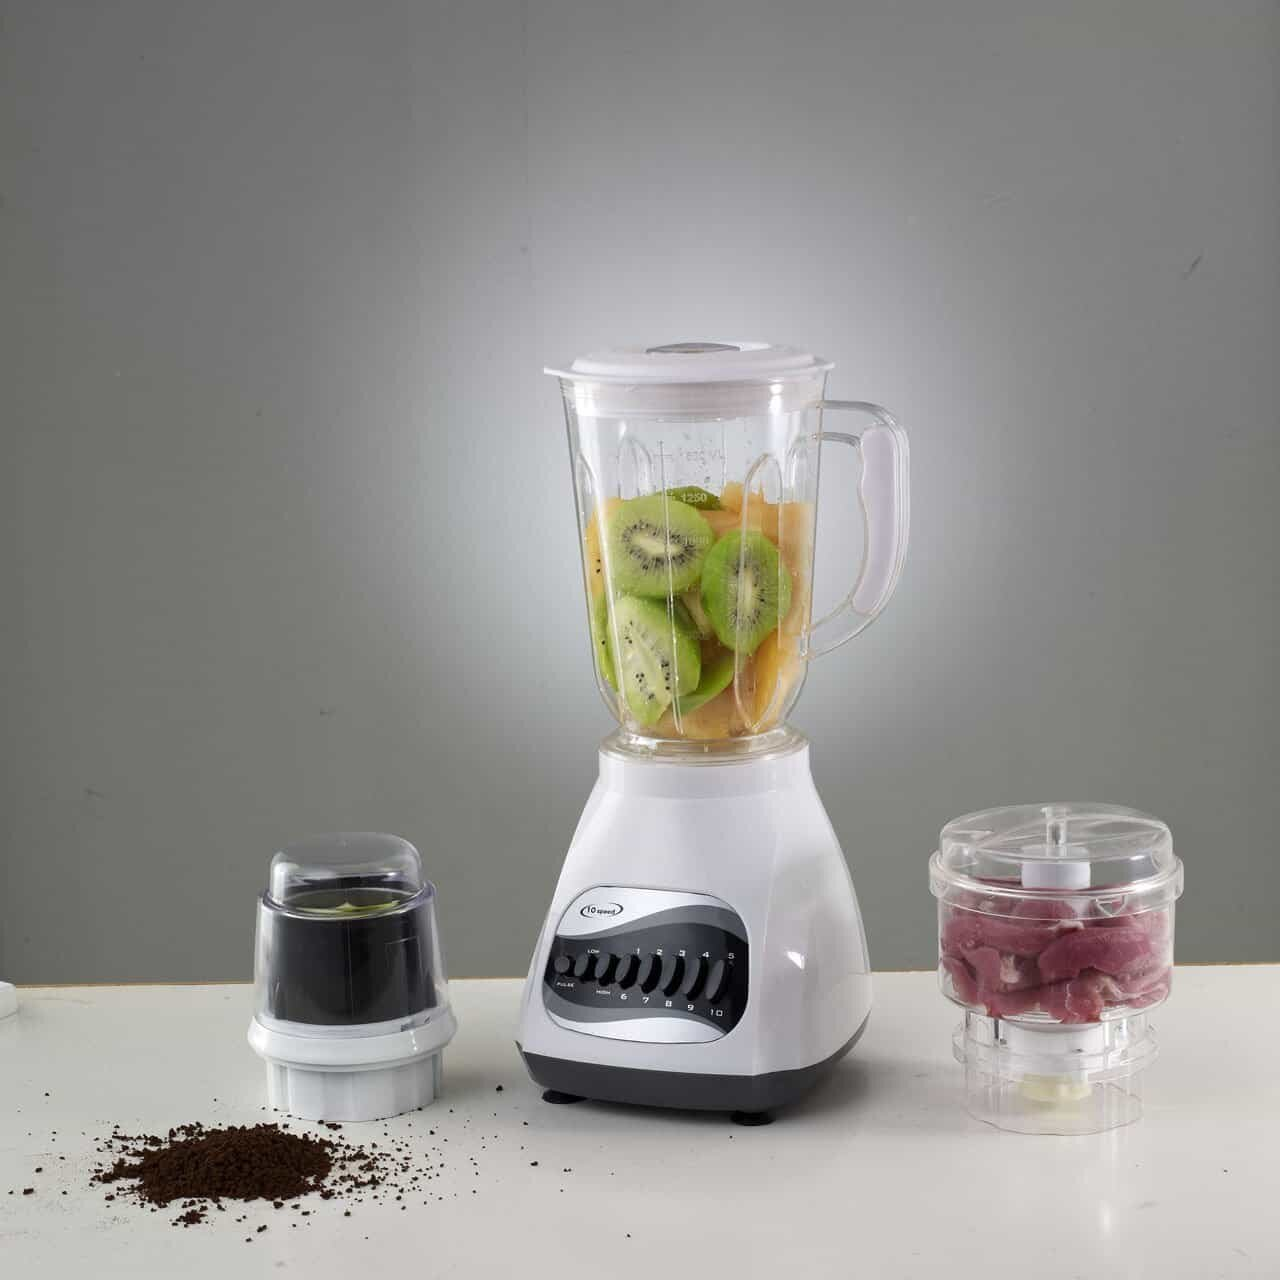 blender mixer juicer food processor